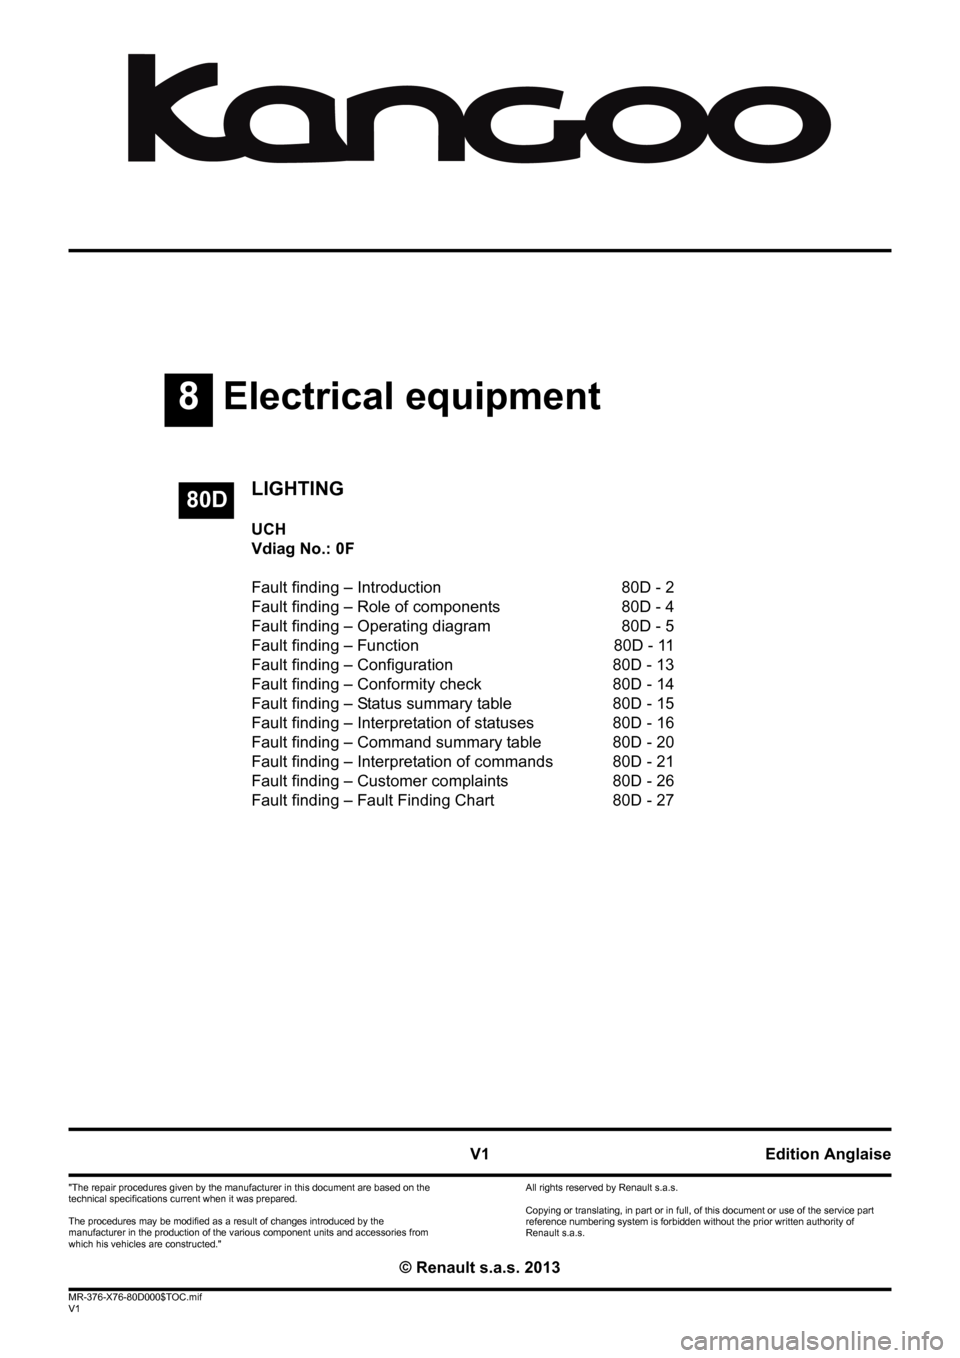 "RENAULT KANGOO 2013 X61 / 2.G Lighting Workshop Manual 8Electrical equipment V1 MR-376-X76-80D000$TOC.mif V1 80D ""The repair procedures given by the manufacturer in this document are based on the  technical specifications current when it was prepared. The"